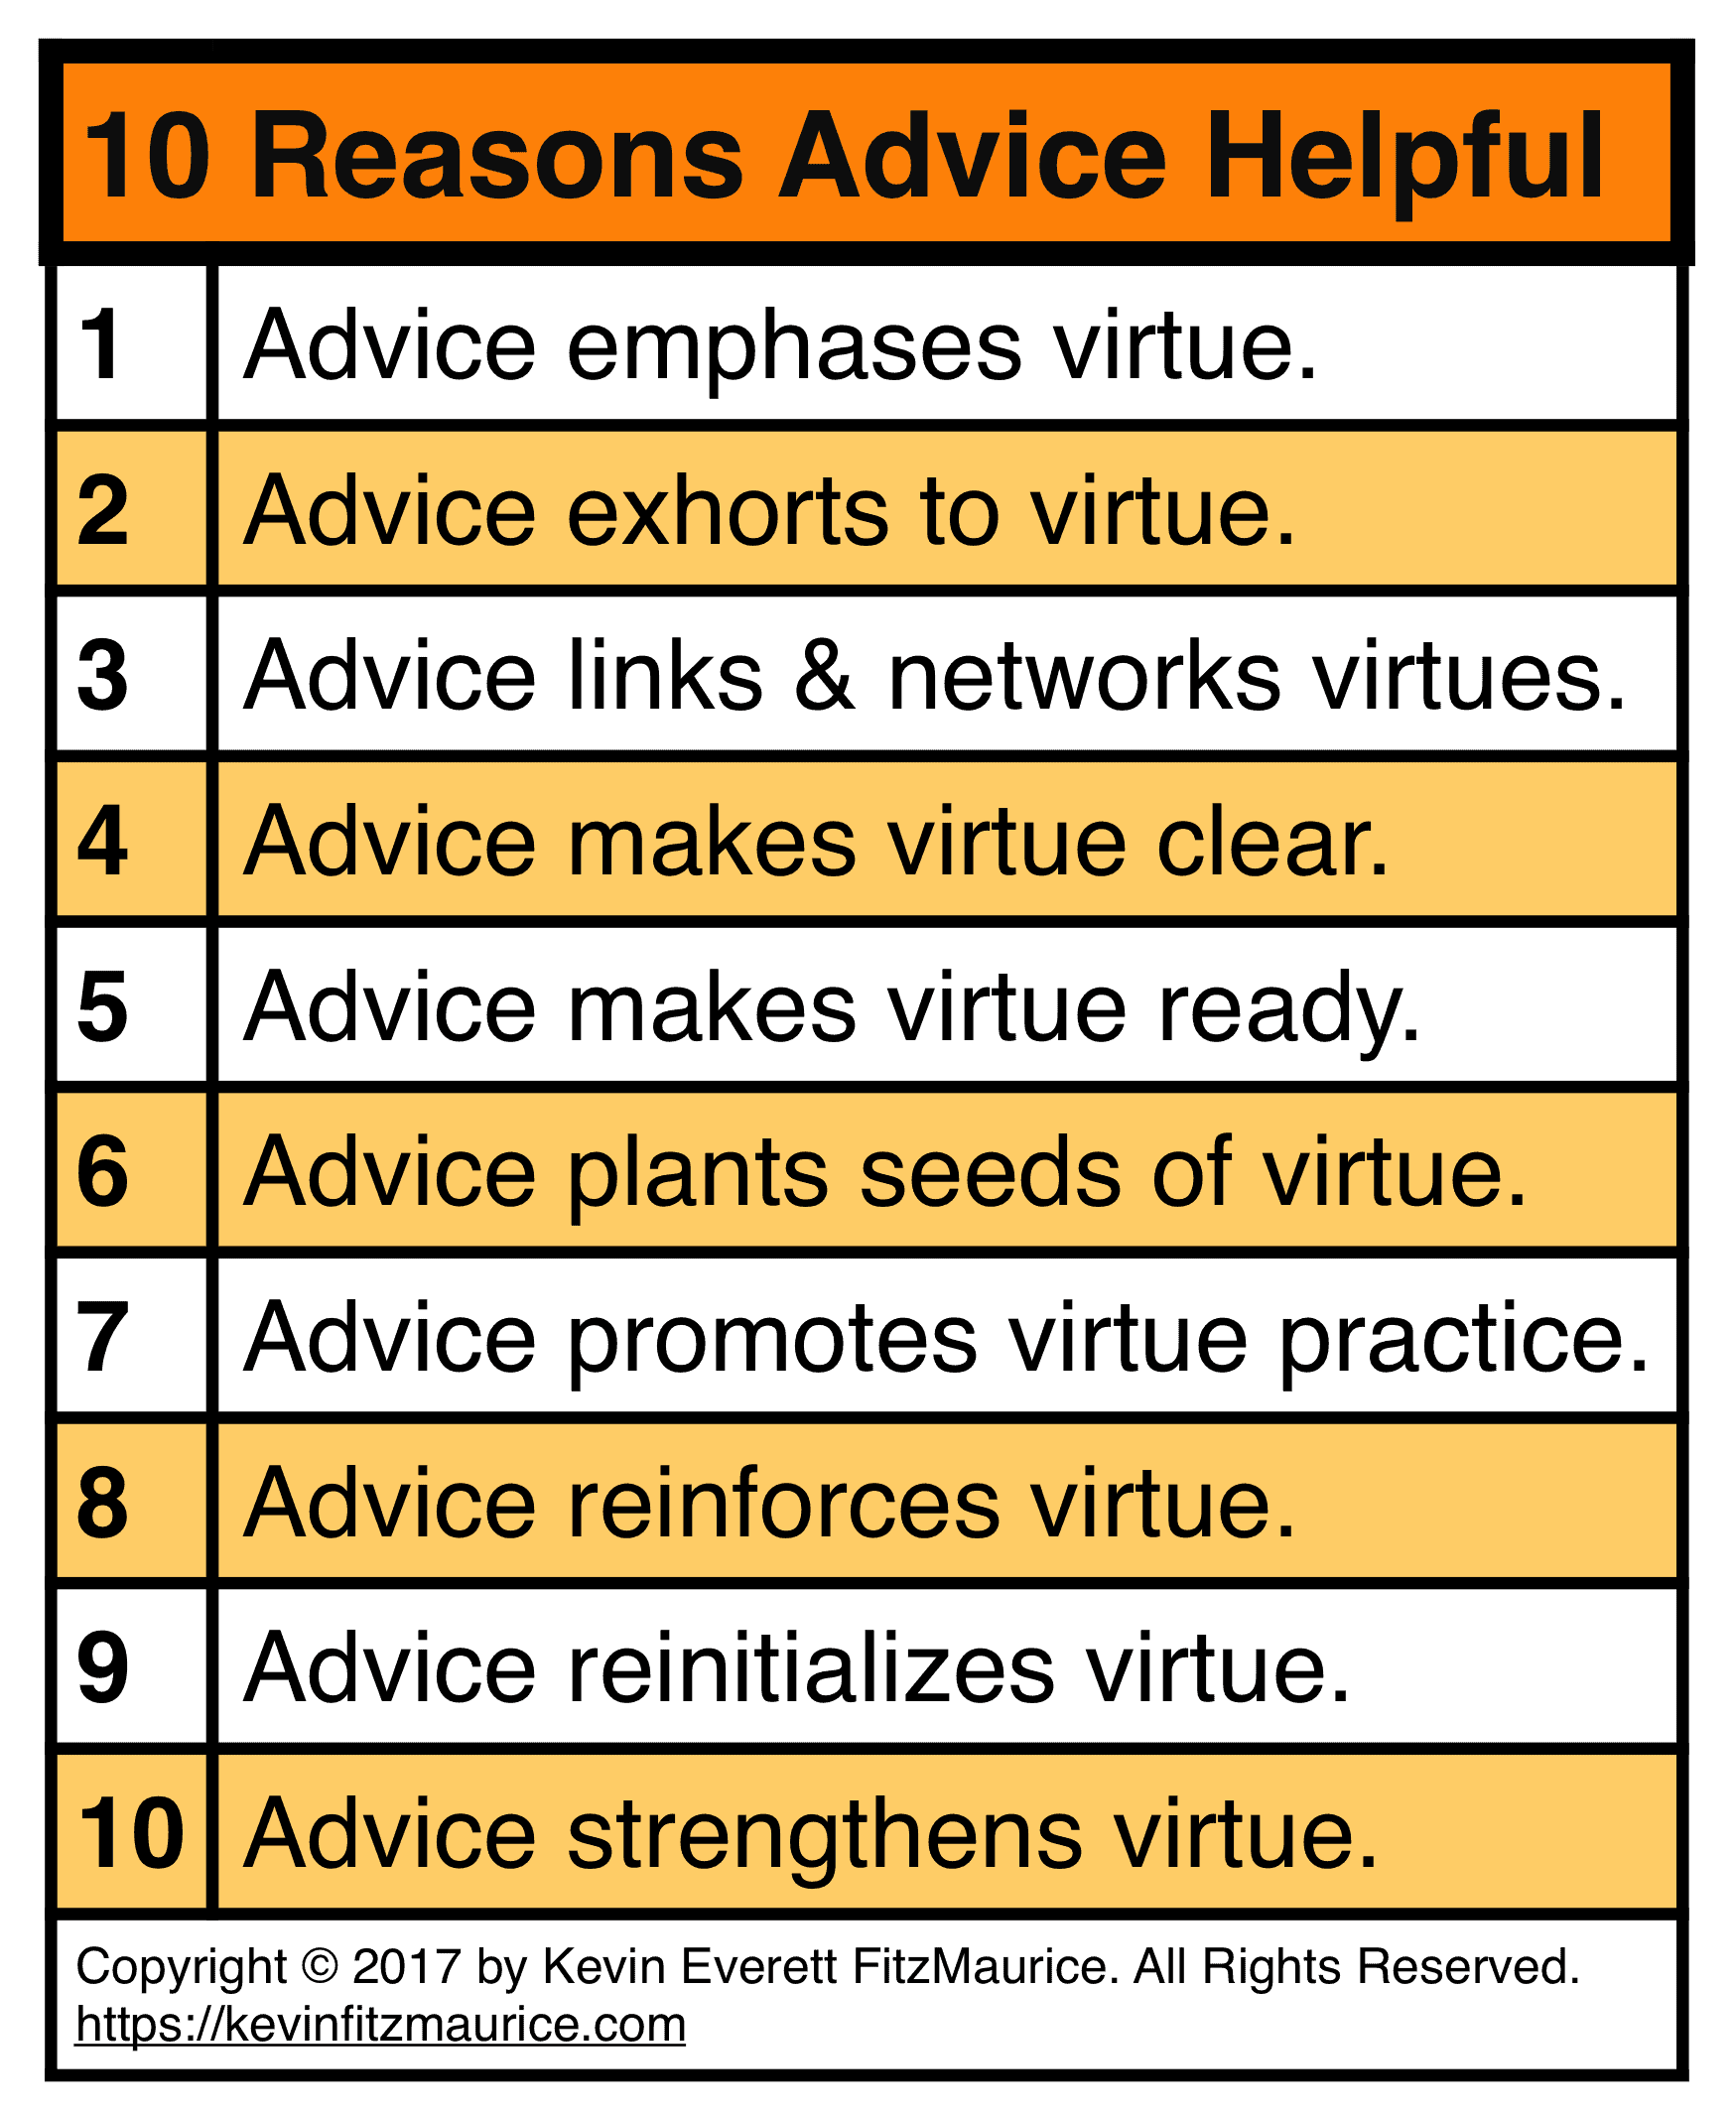 10 Reasons Advice Is Helpful